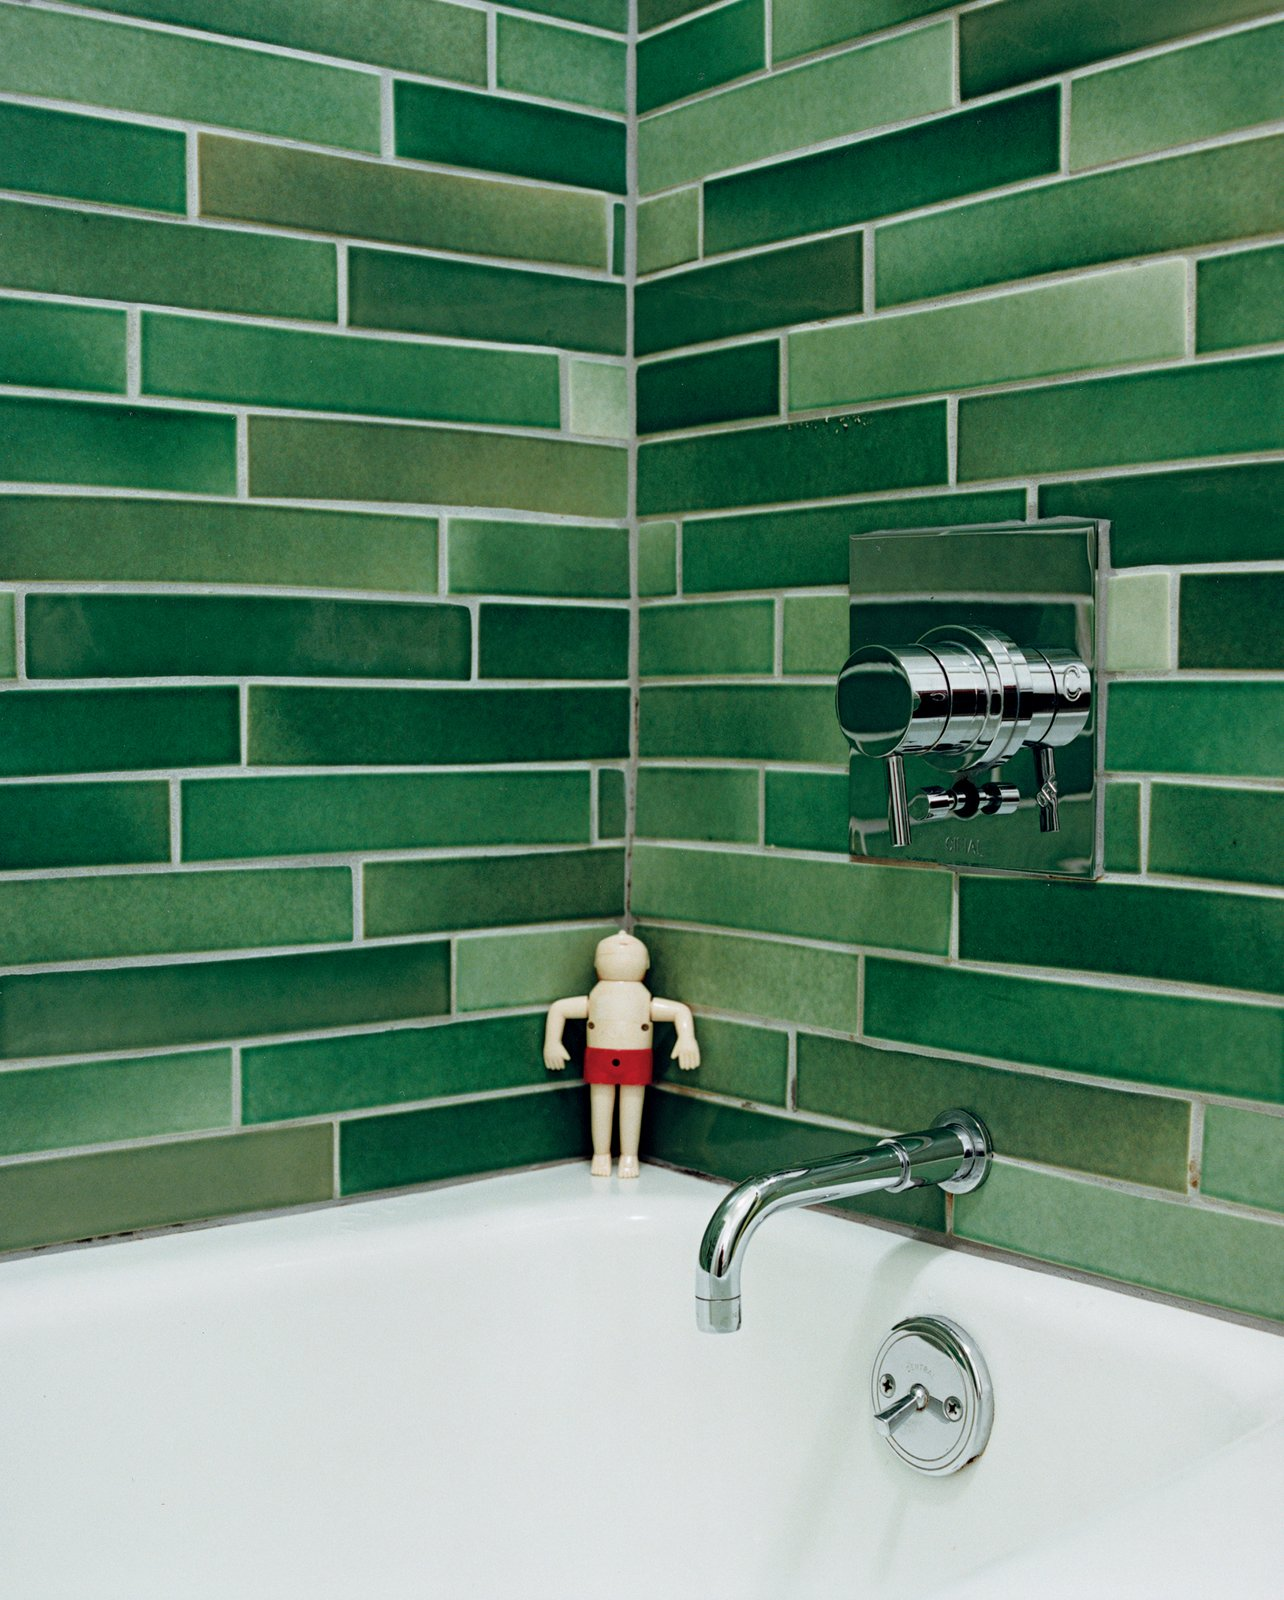 The Heath tiles in the bathroom were hand-selected from boxes of factory seconds. A Mid-Century Modern Home in Southwest Portland - Photo 15 of 15